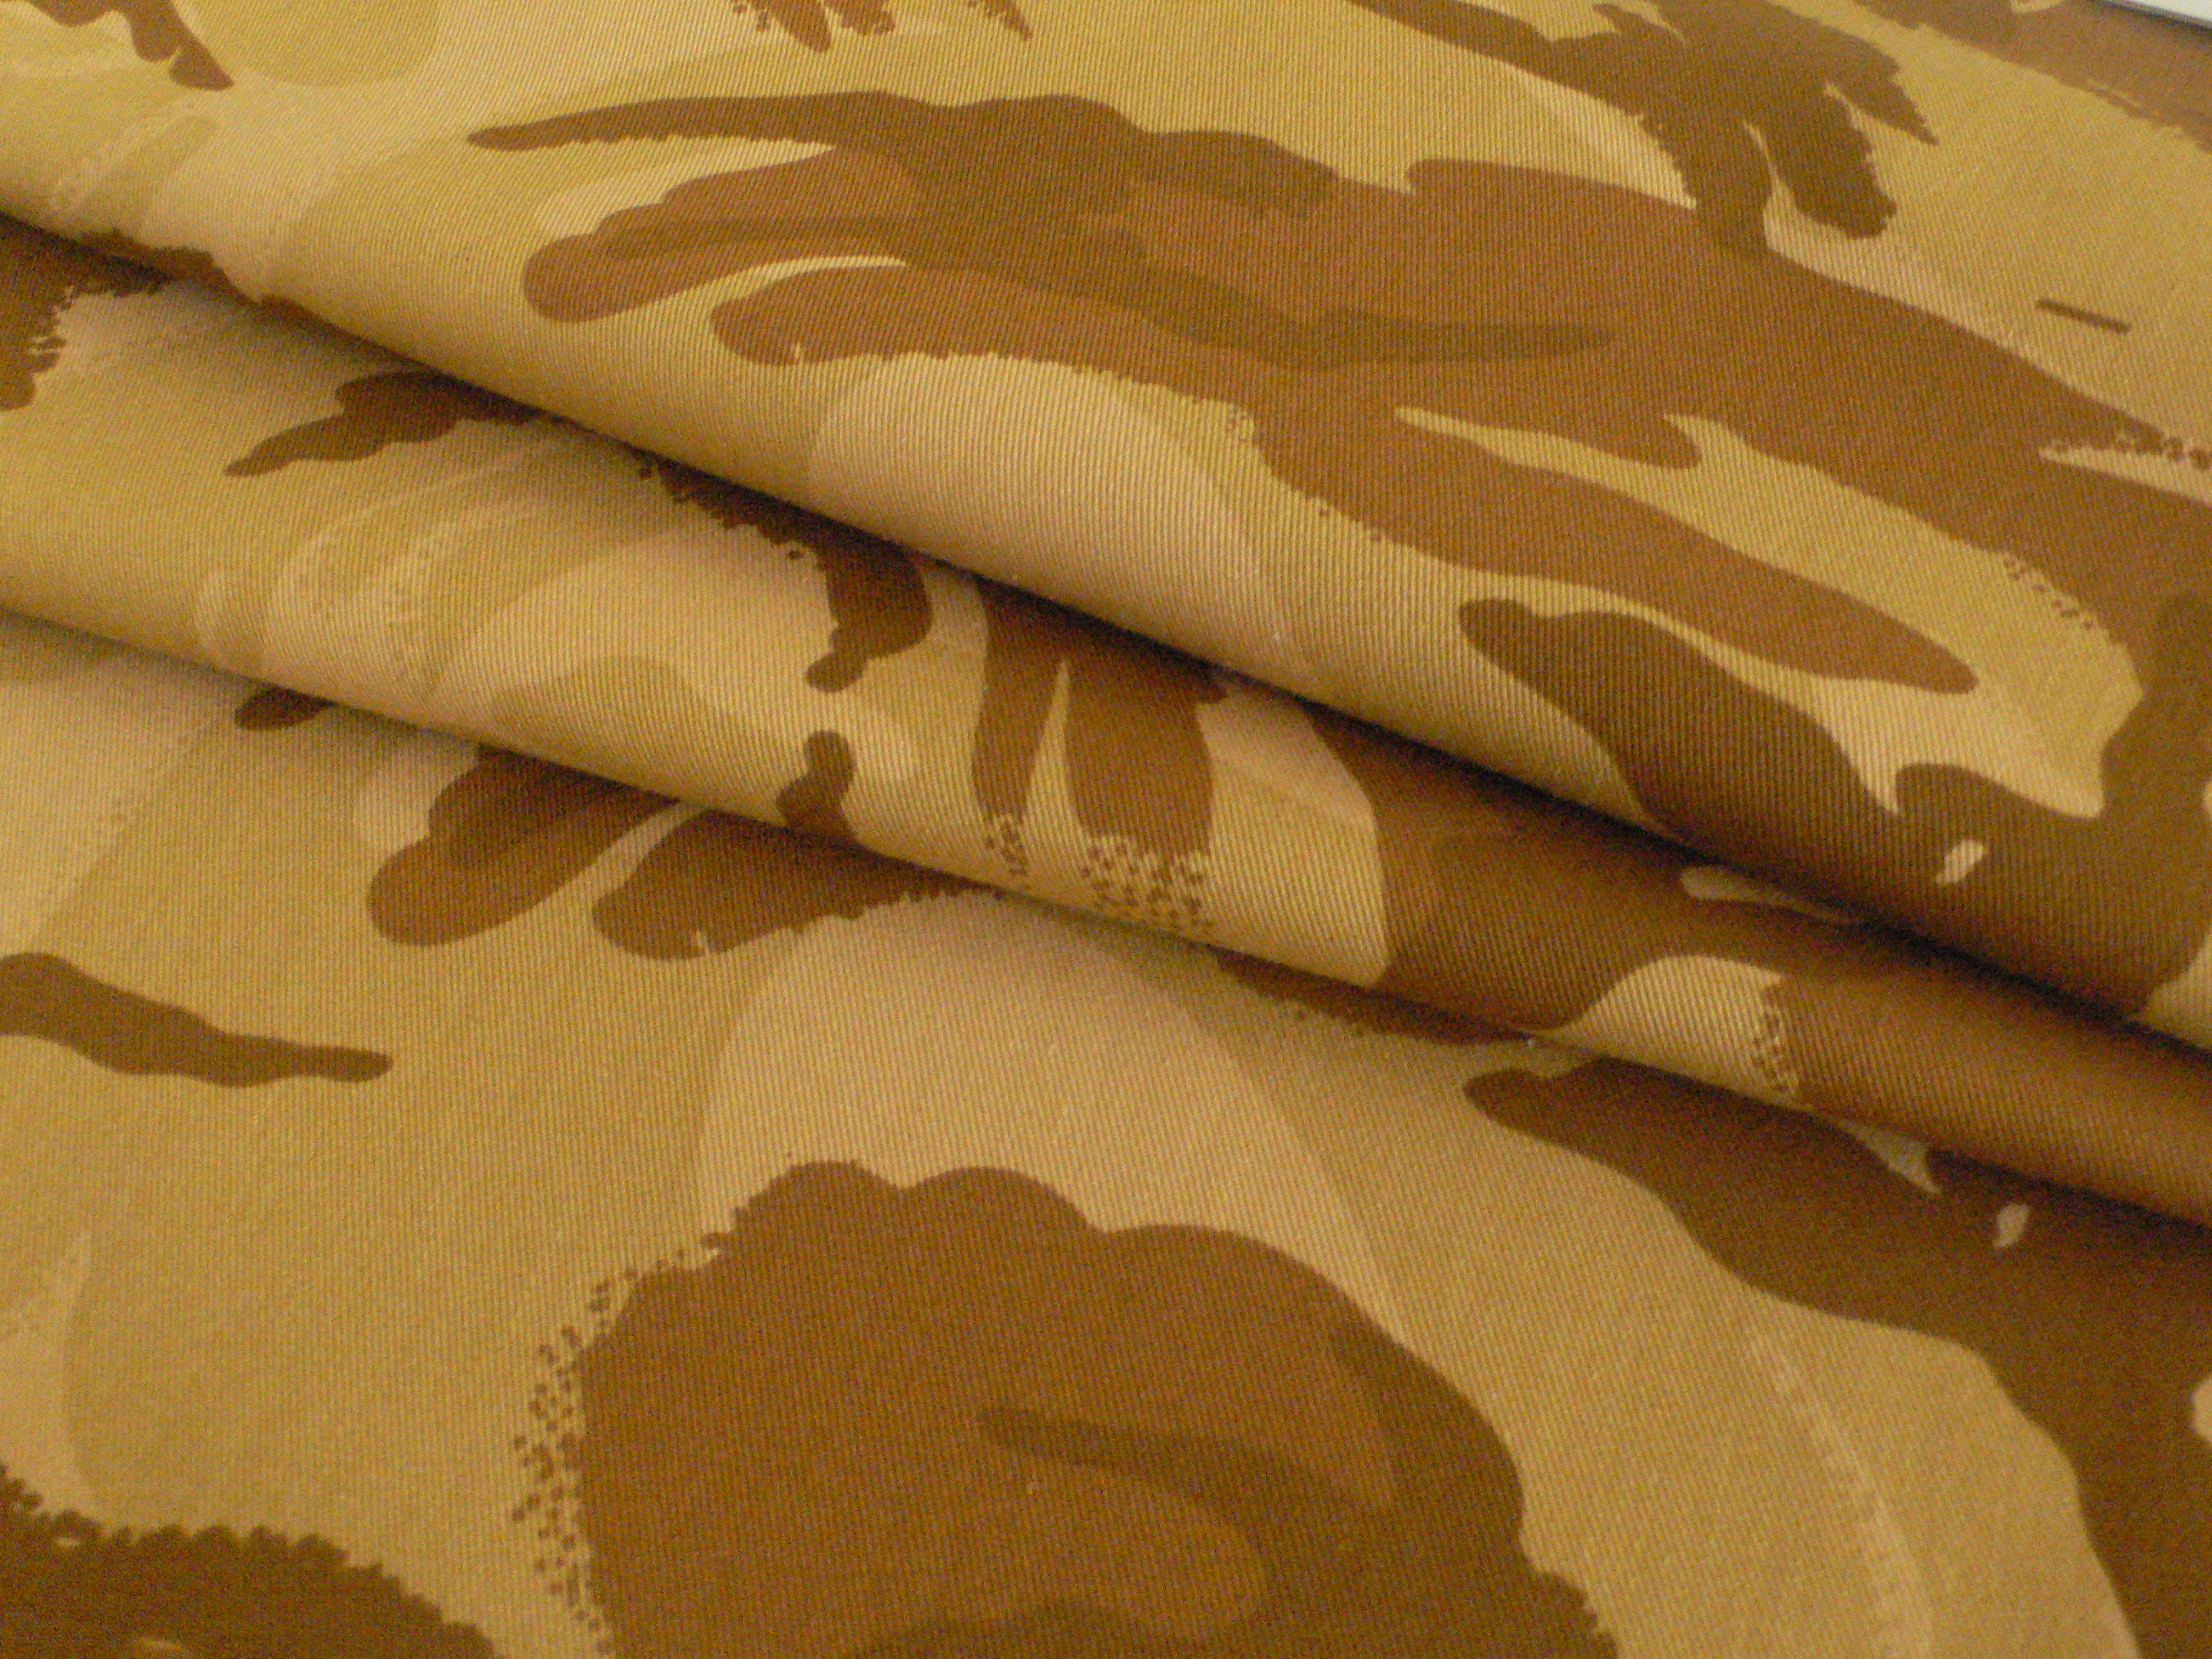 Army Desert Camouflage Fabric for the MIddle East